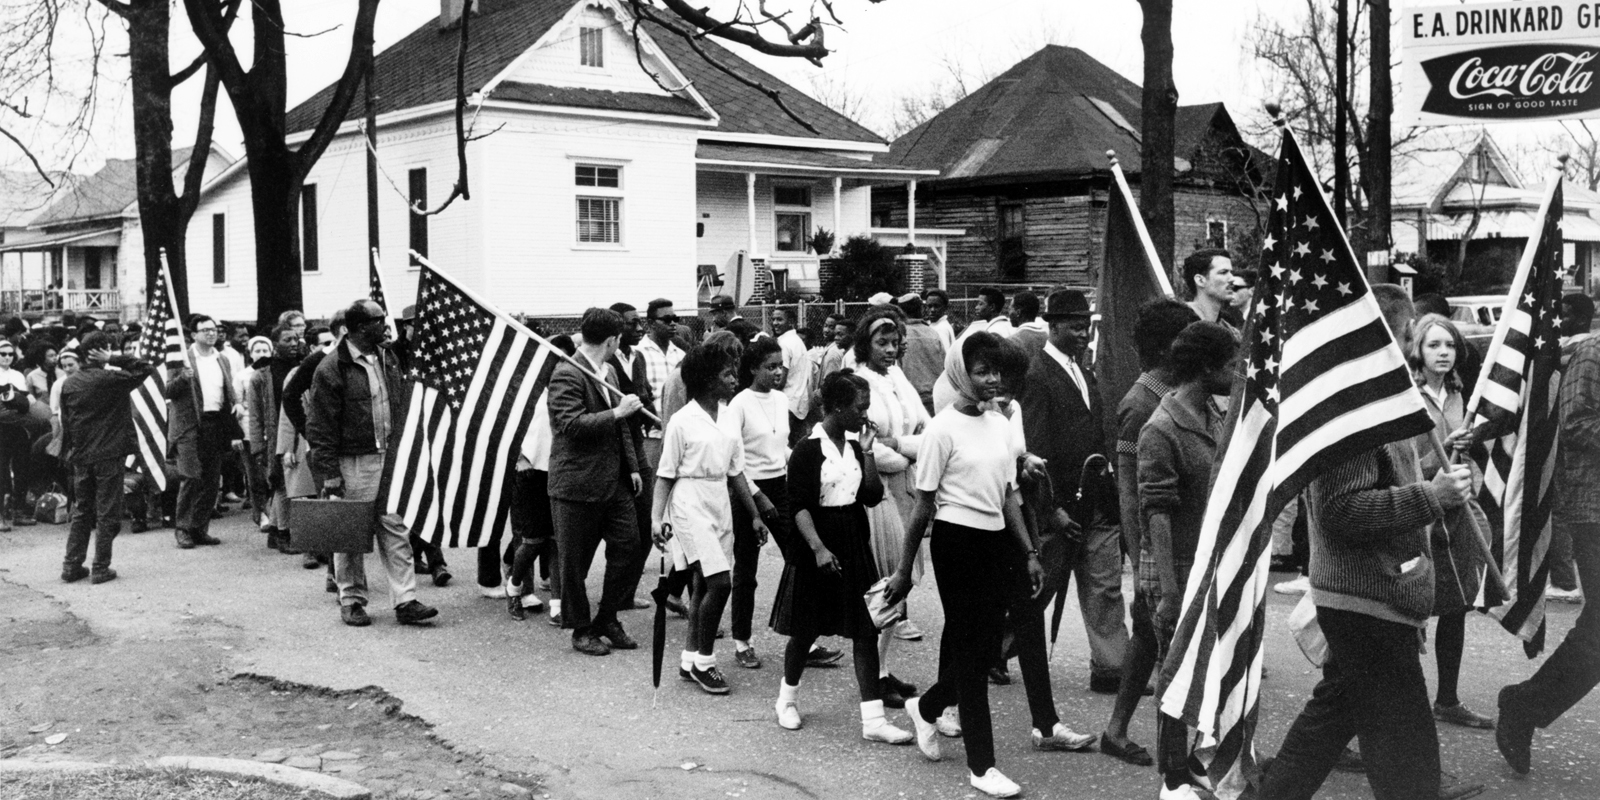 """""""Participants, some carrying American flags, marching in the civil rights march from Selma to Montgomery, Alabama in 1965,"""" via Library of Congress."""